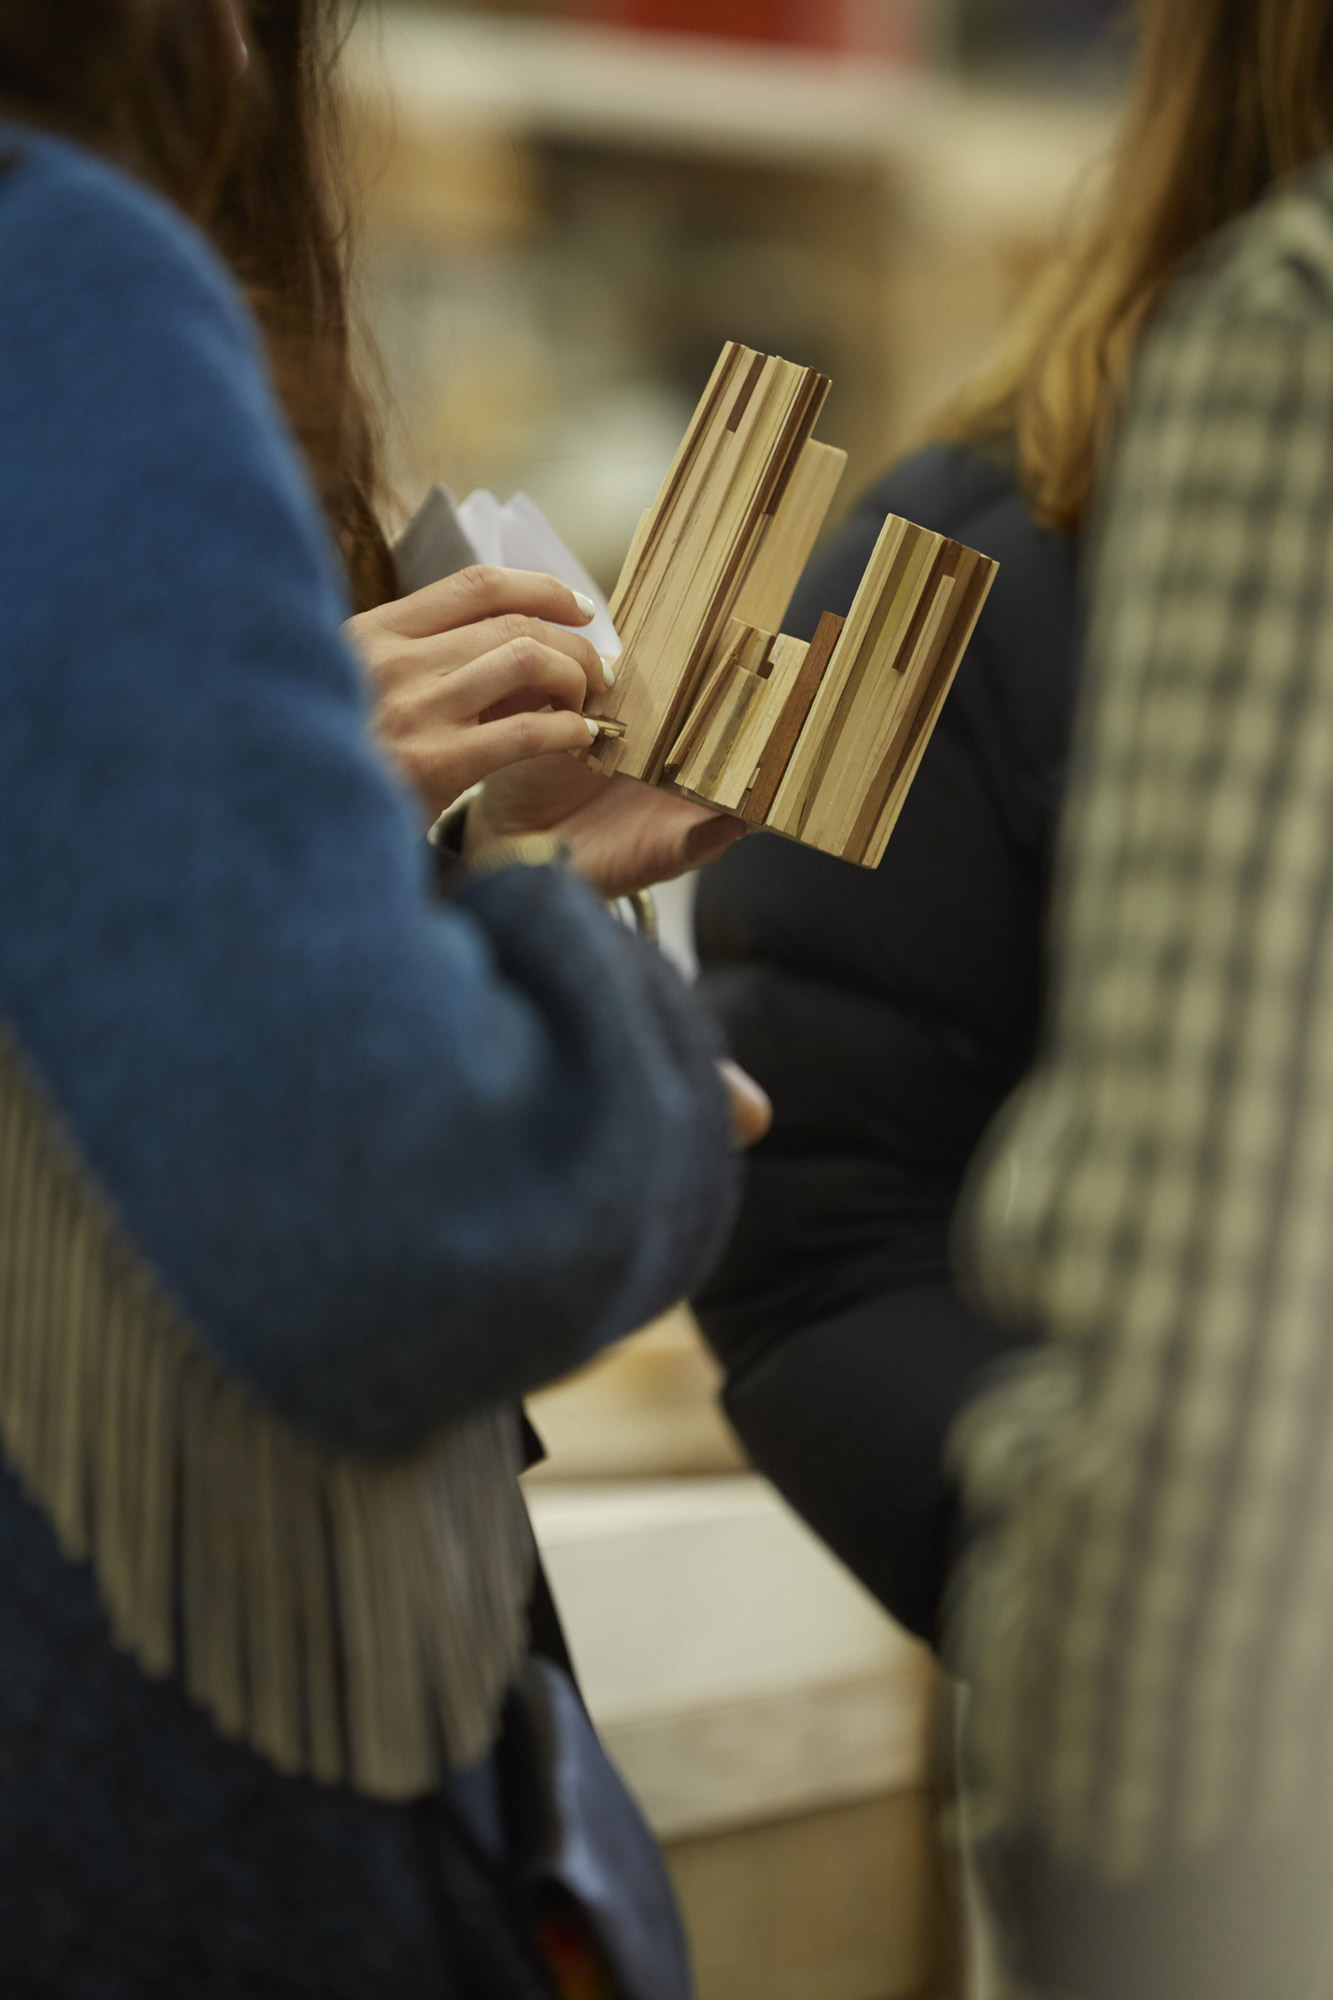 Too Good To Waste: Benedetta Tagliabue holds a wooden maquette of the installation © Jon Cardwel